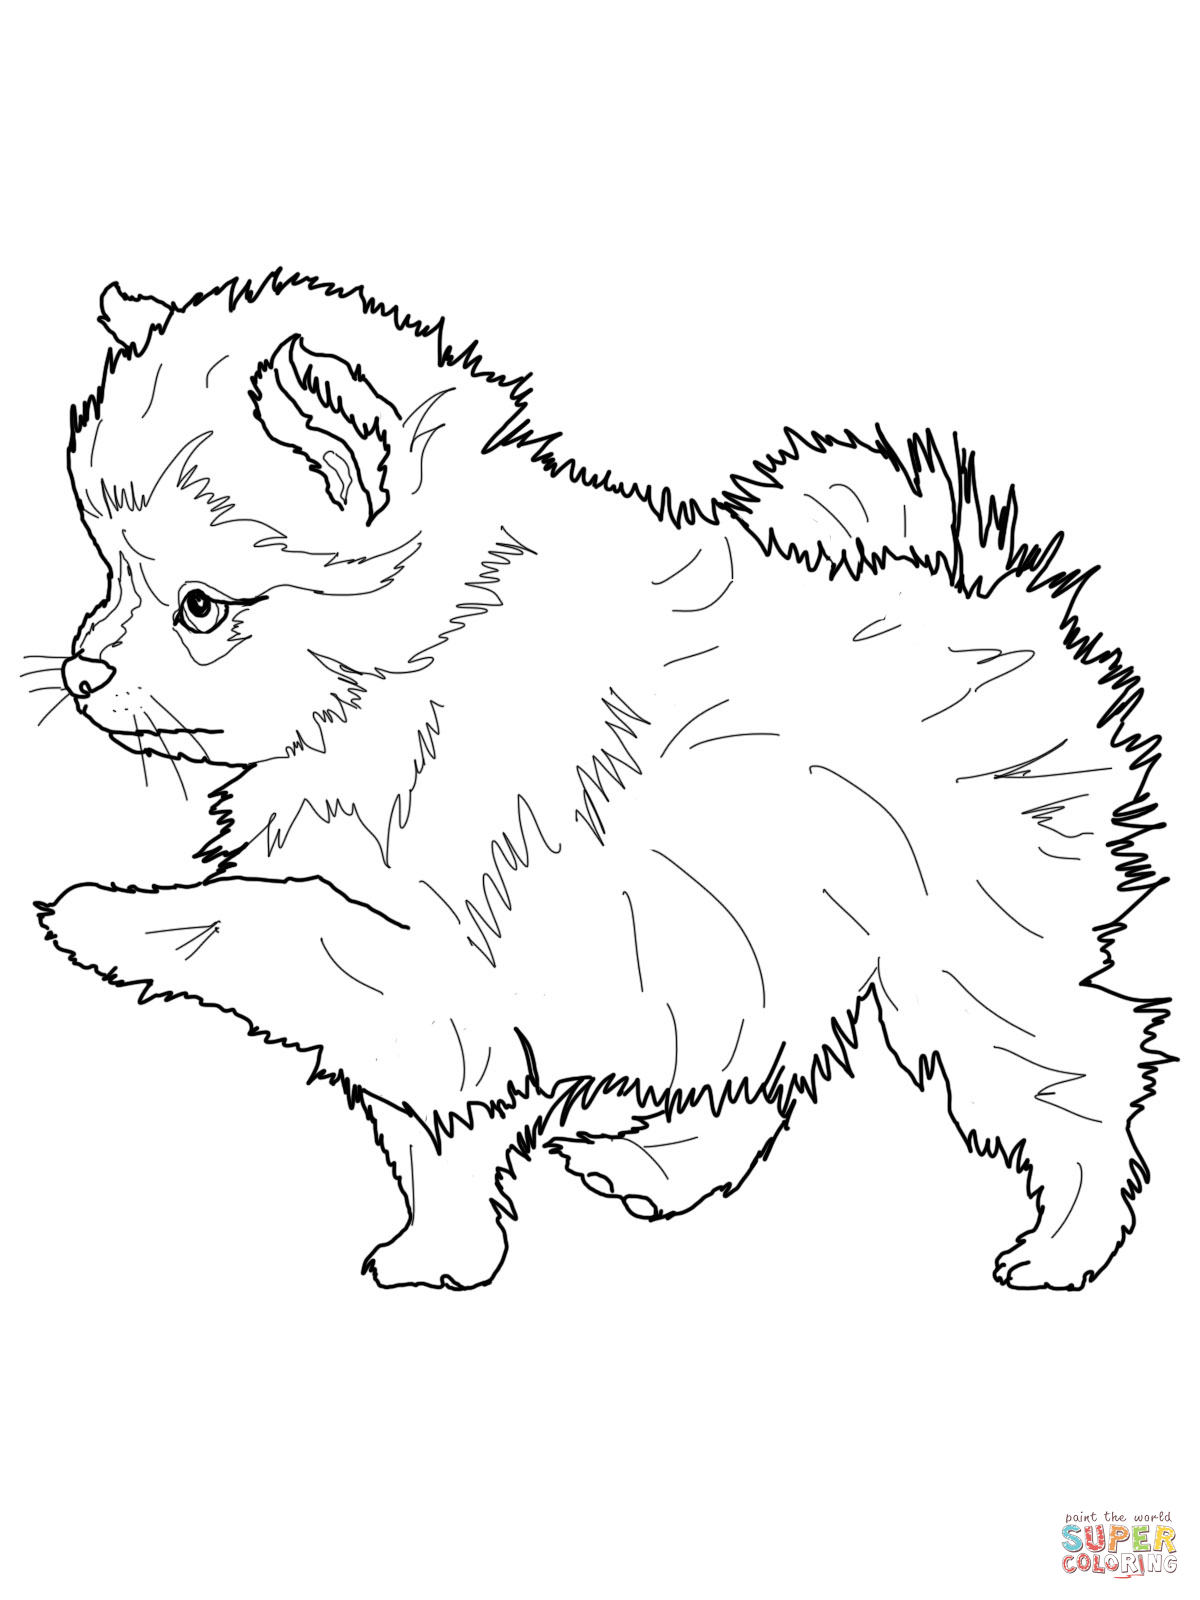 husky dog coloring pages husky puppy coloring pages at getcoloringscom free coloring pages husky dog